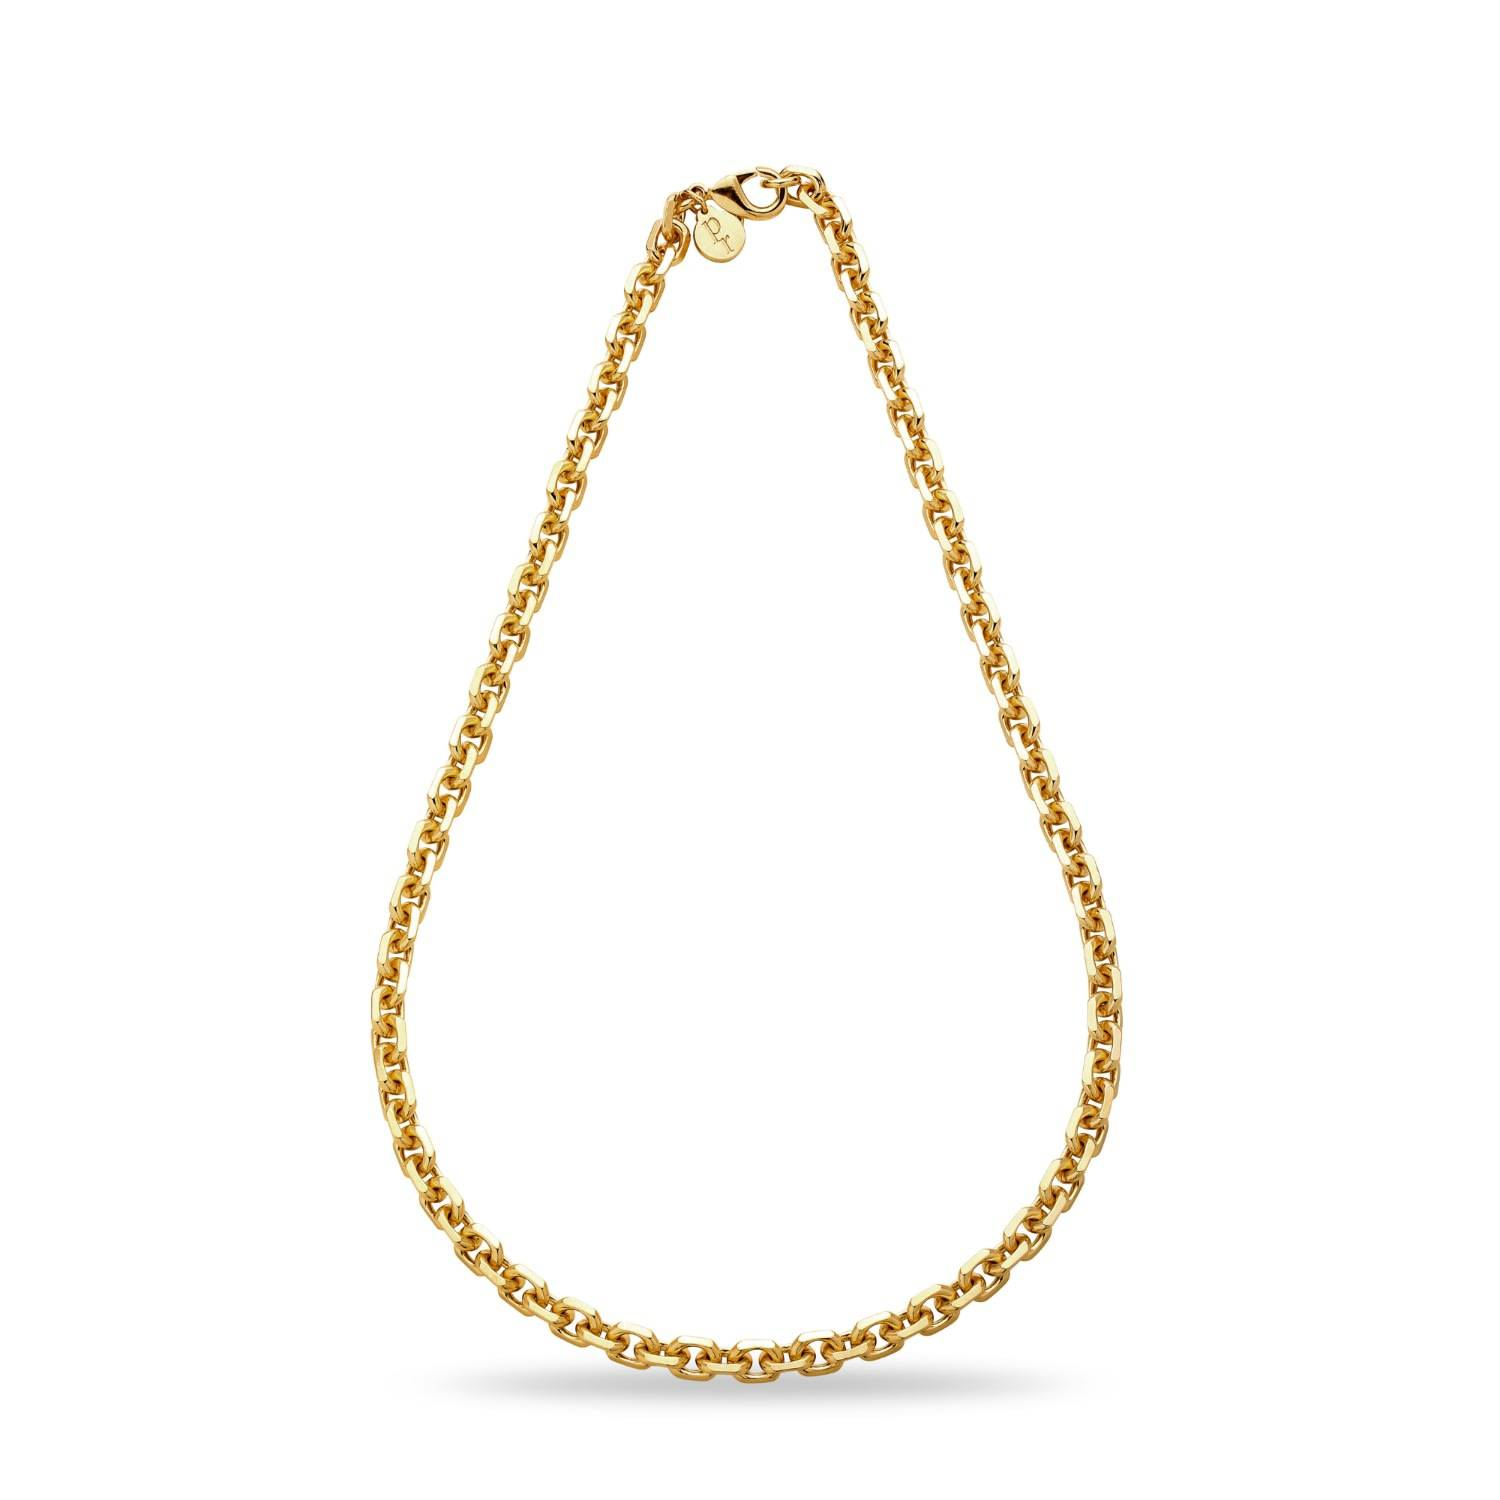 Patty Rose Jewellery Women's Recycled Gold Brass Chain No.10 Necklace Patty Rose Jewellery